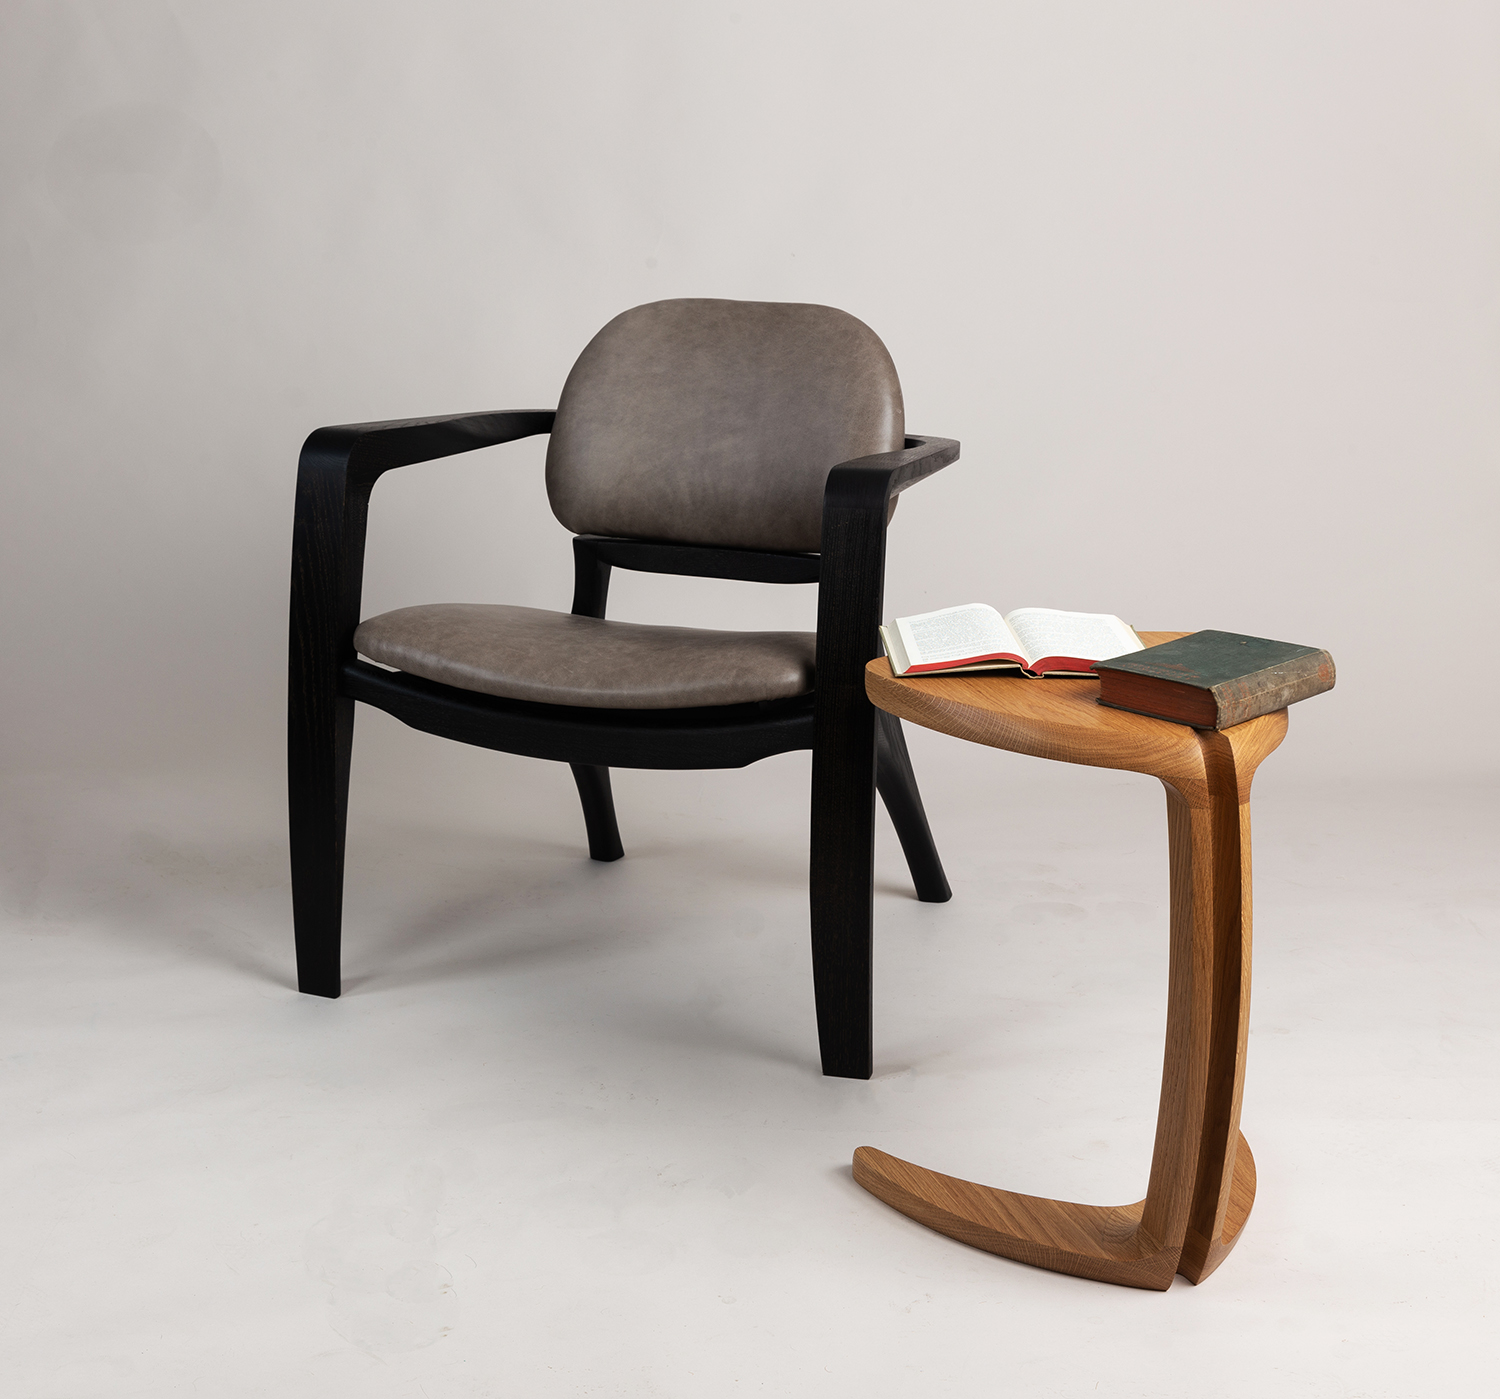 Amplex Chair and Fleure side Table by Alan Flannery Furniture Design L9.jpg